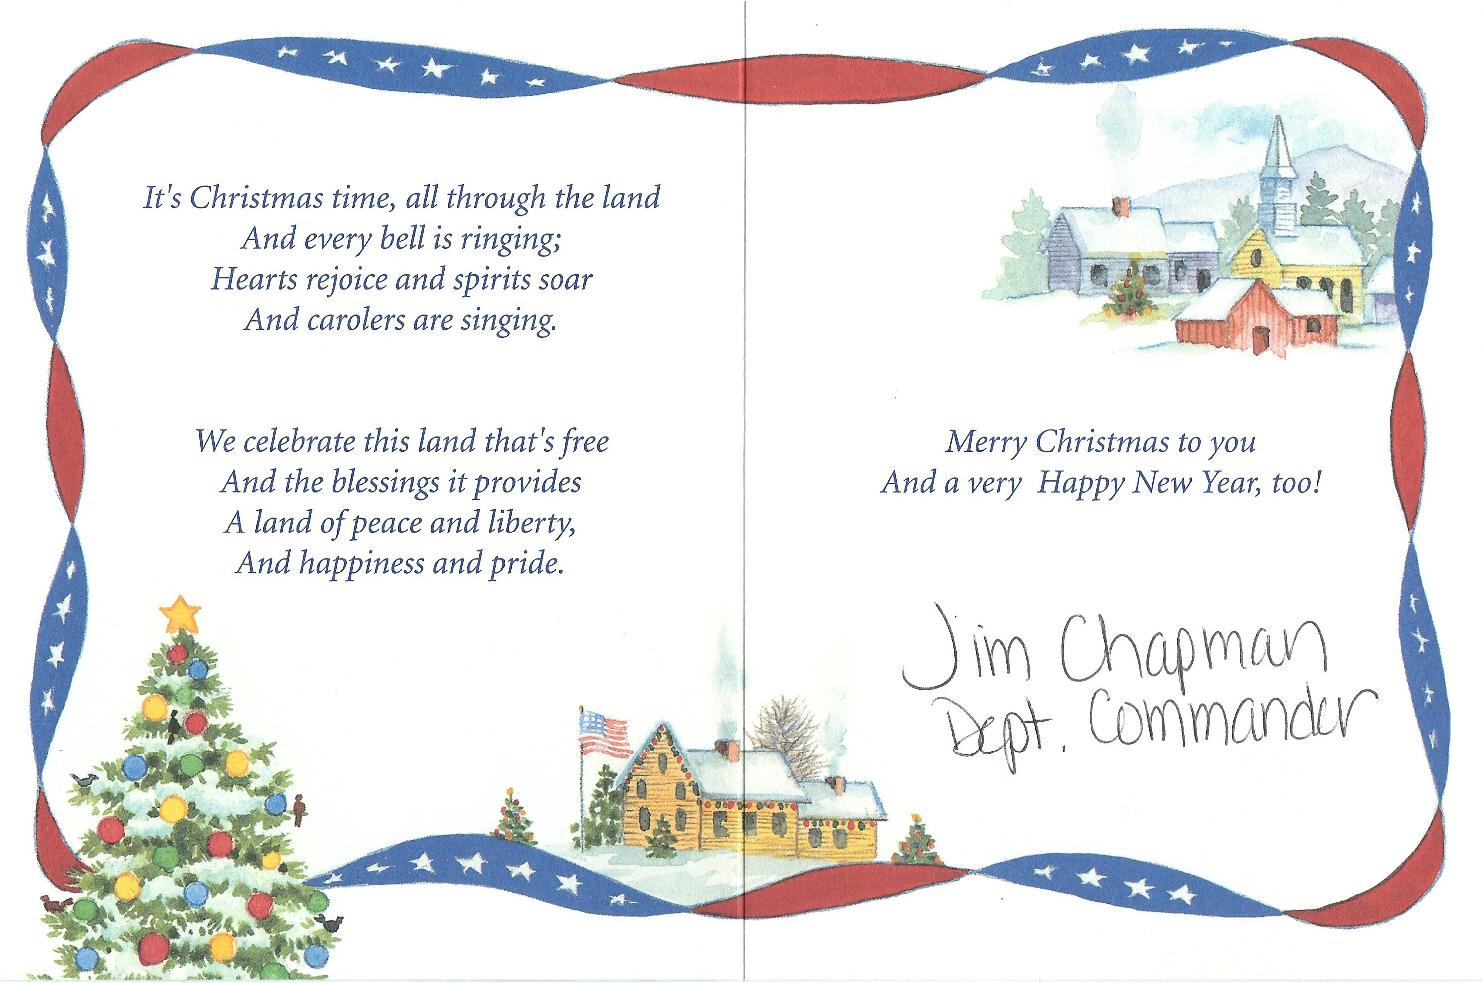 2015 Holiday Card from Dept of Virginia